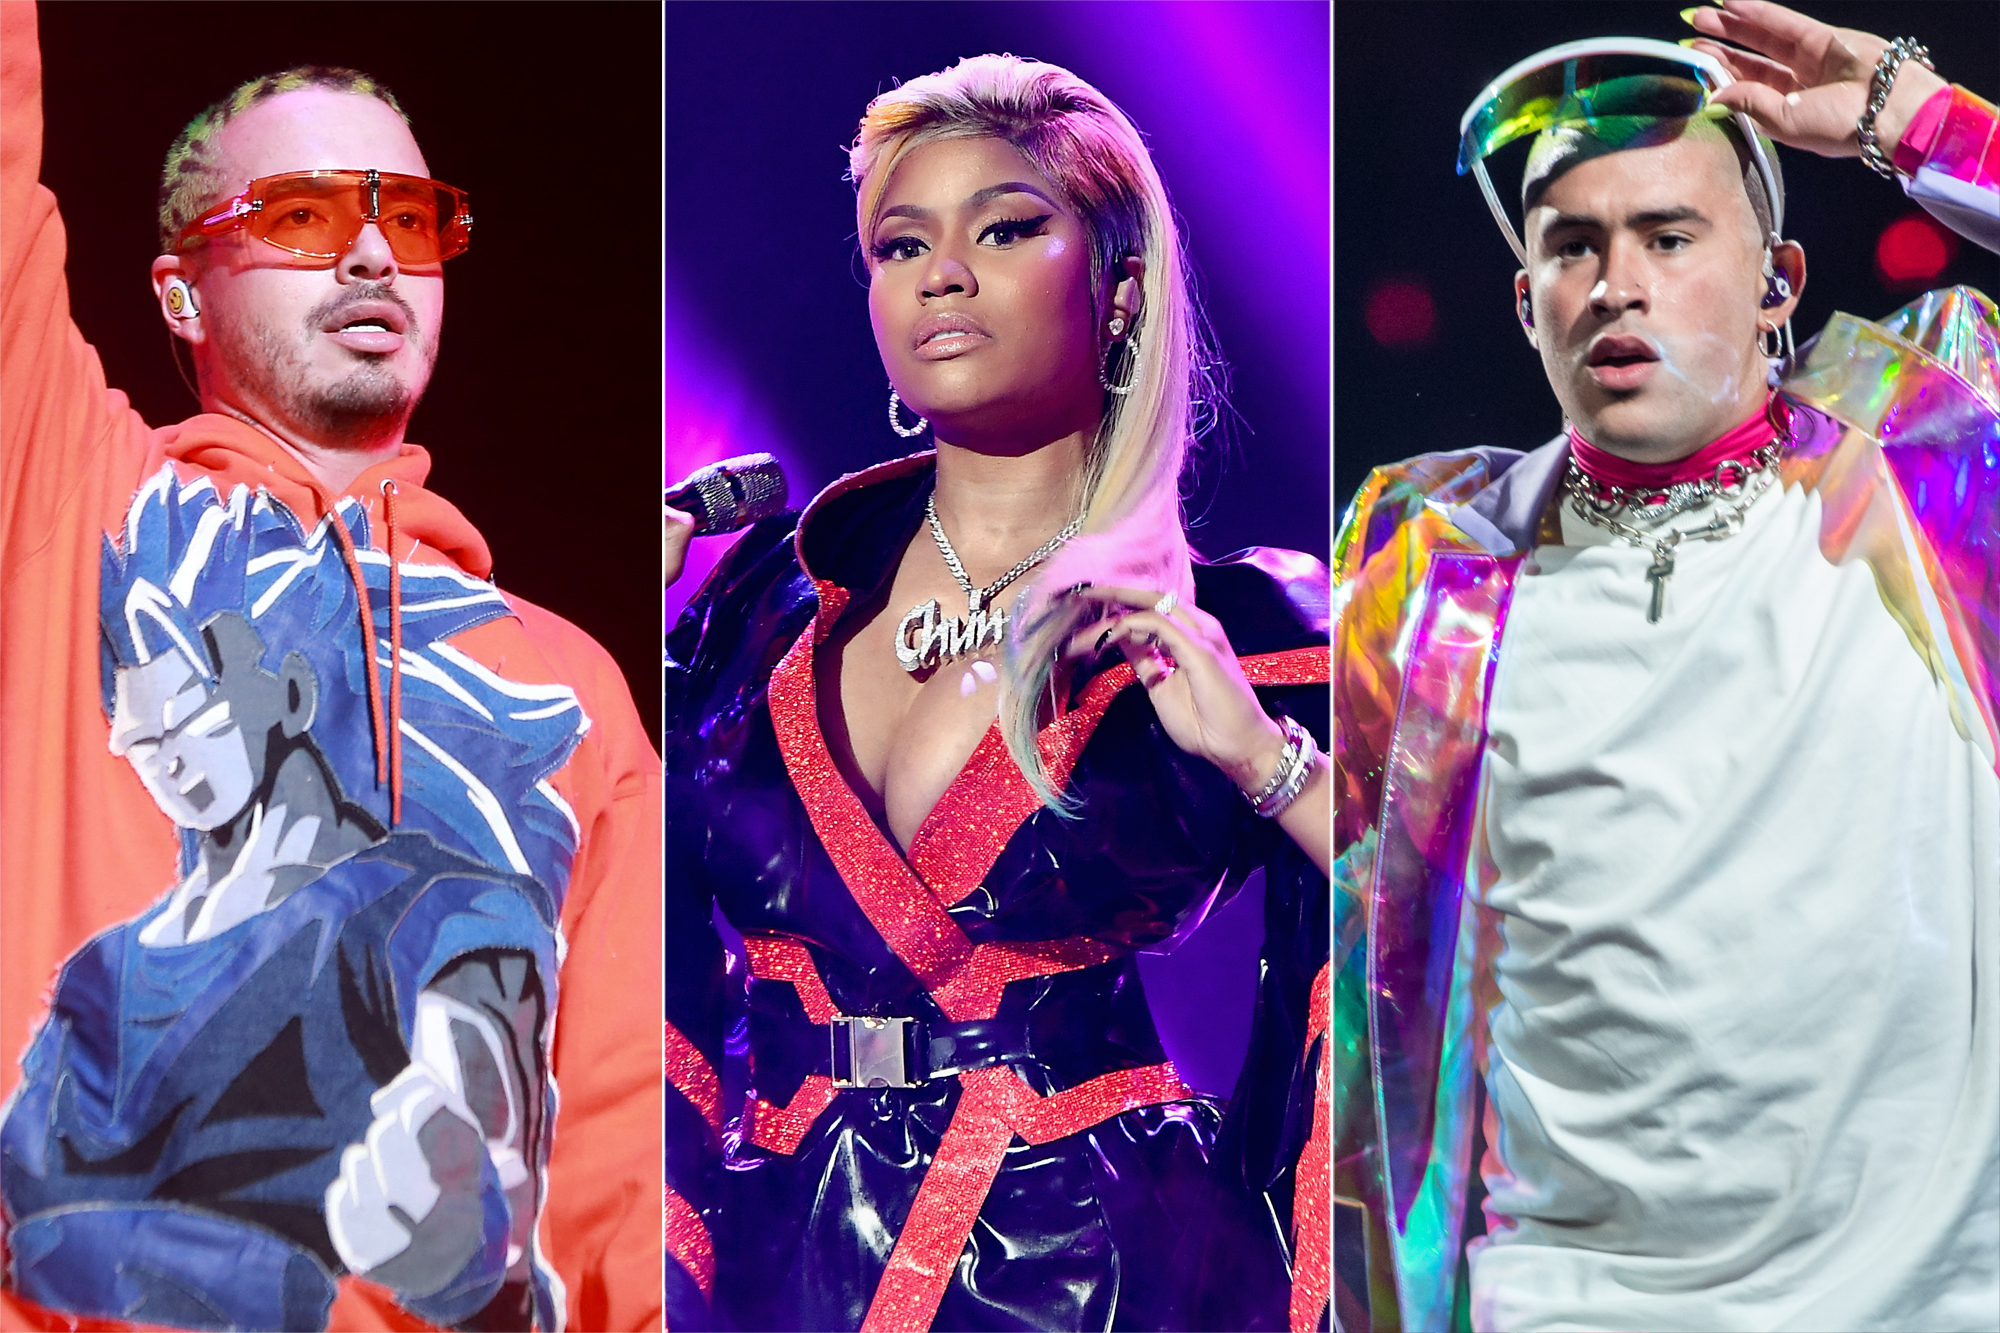 J Balvin, Nicki Minaj, Bad Bunny